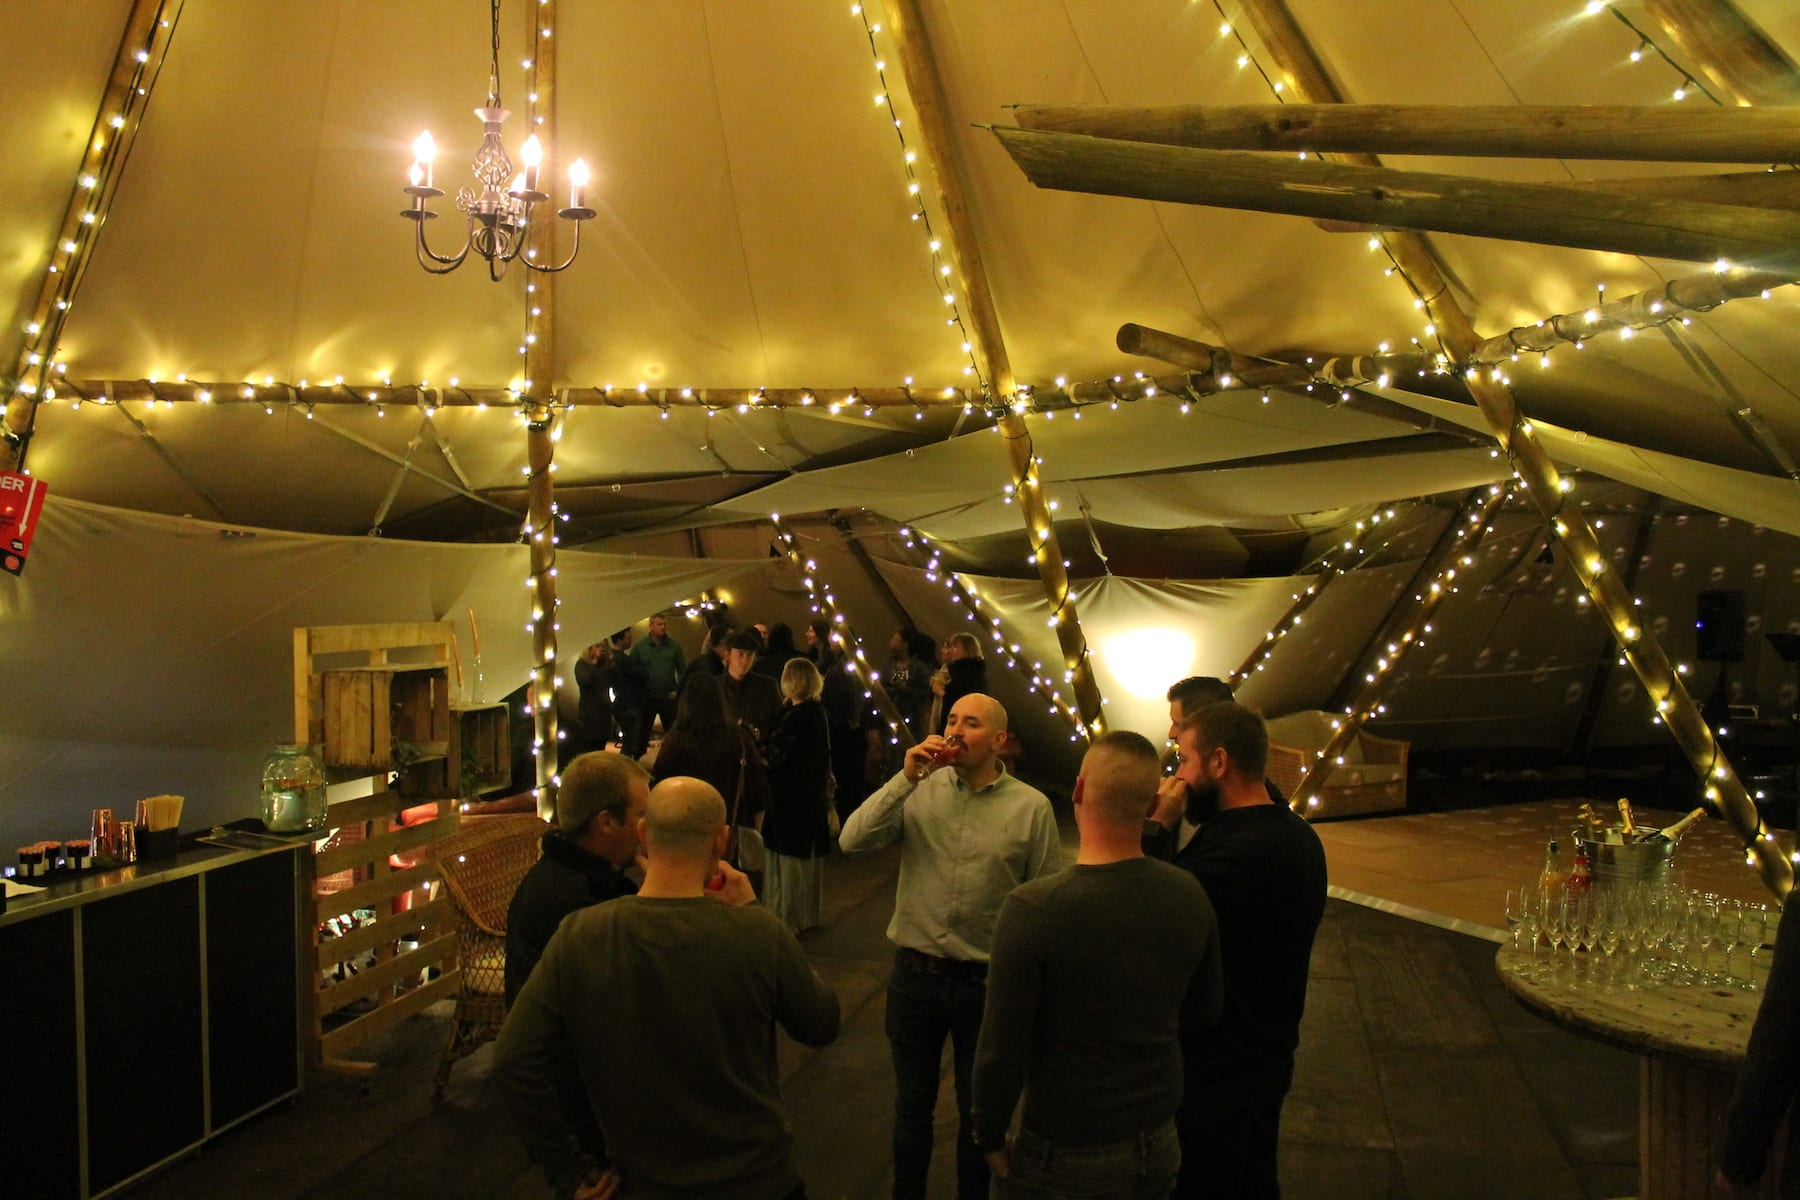 Christmas Party venue Scandinavia is back and bigger than ever